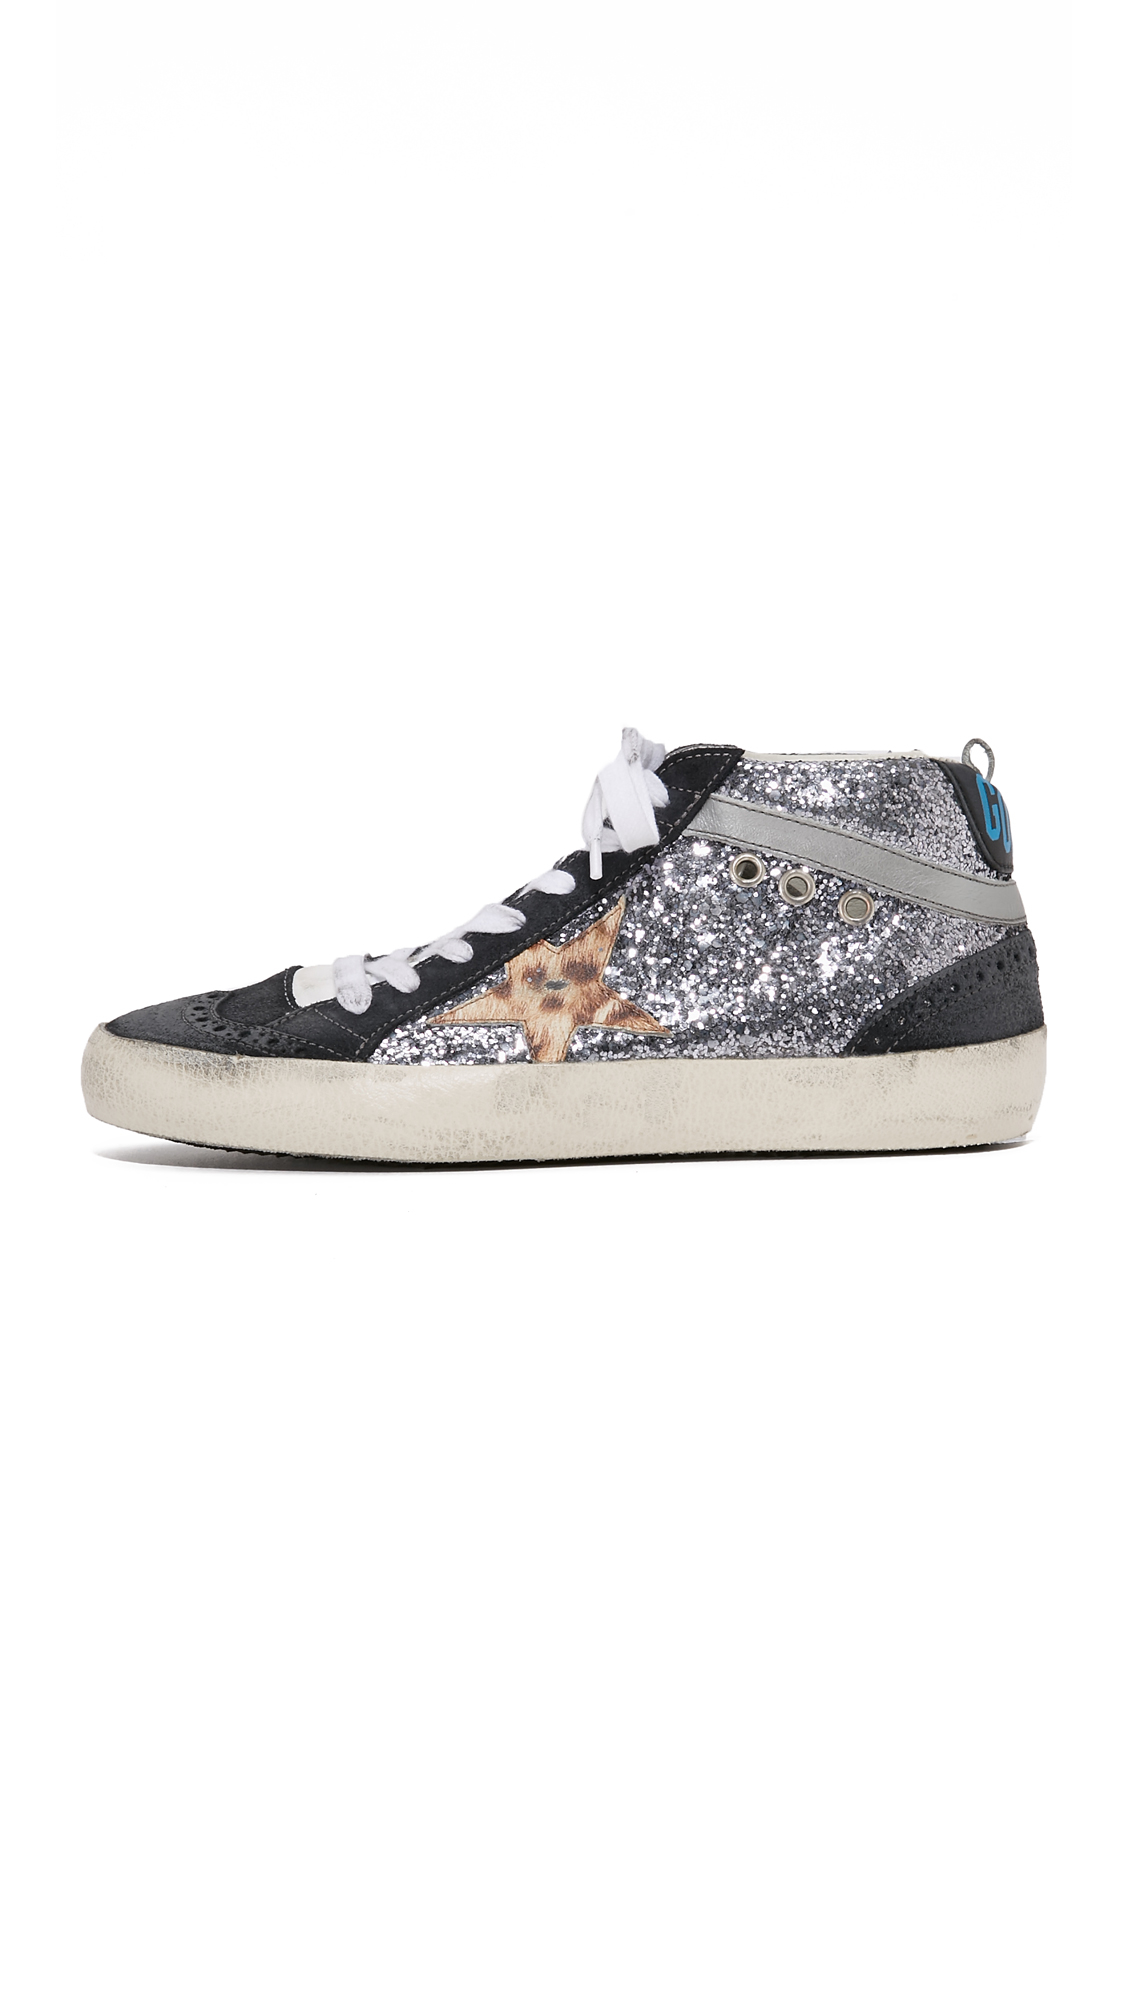 Golden Goose Deluxe Brand Leather Mid Star Glitter Sneakers